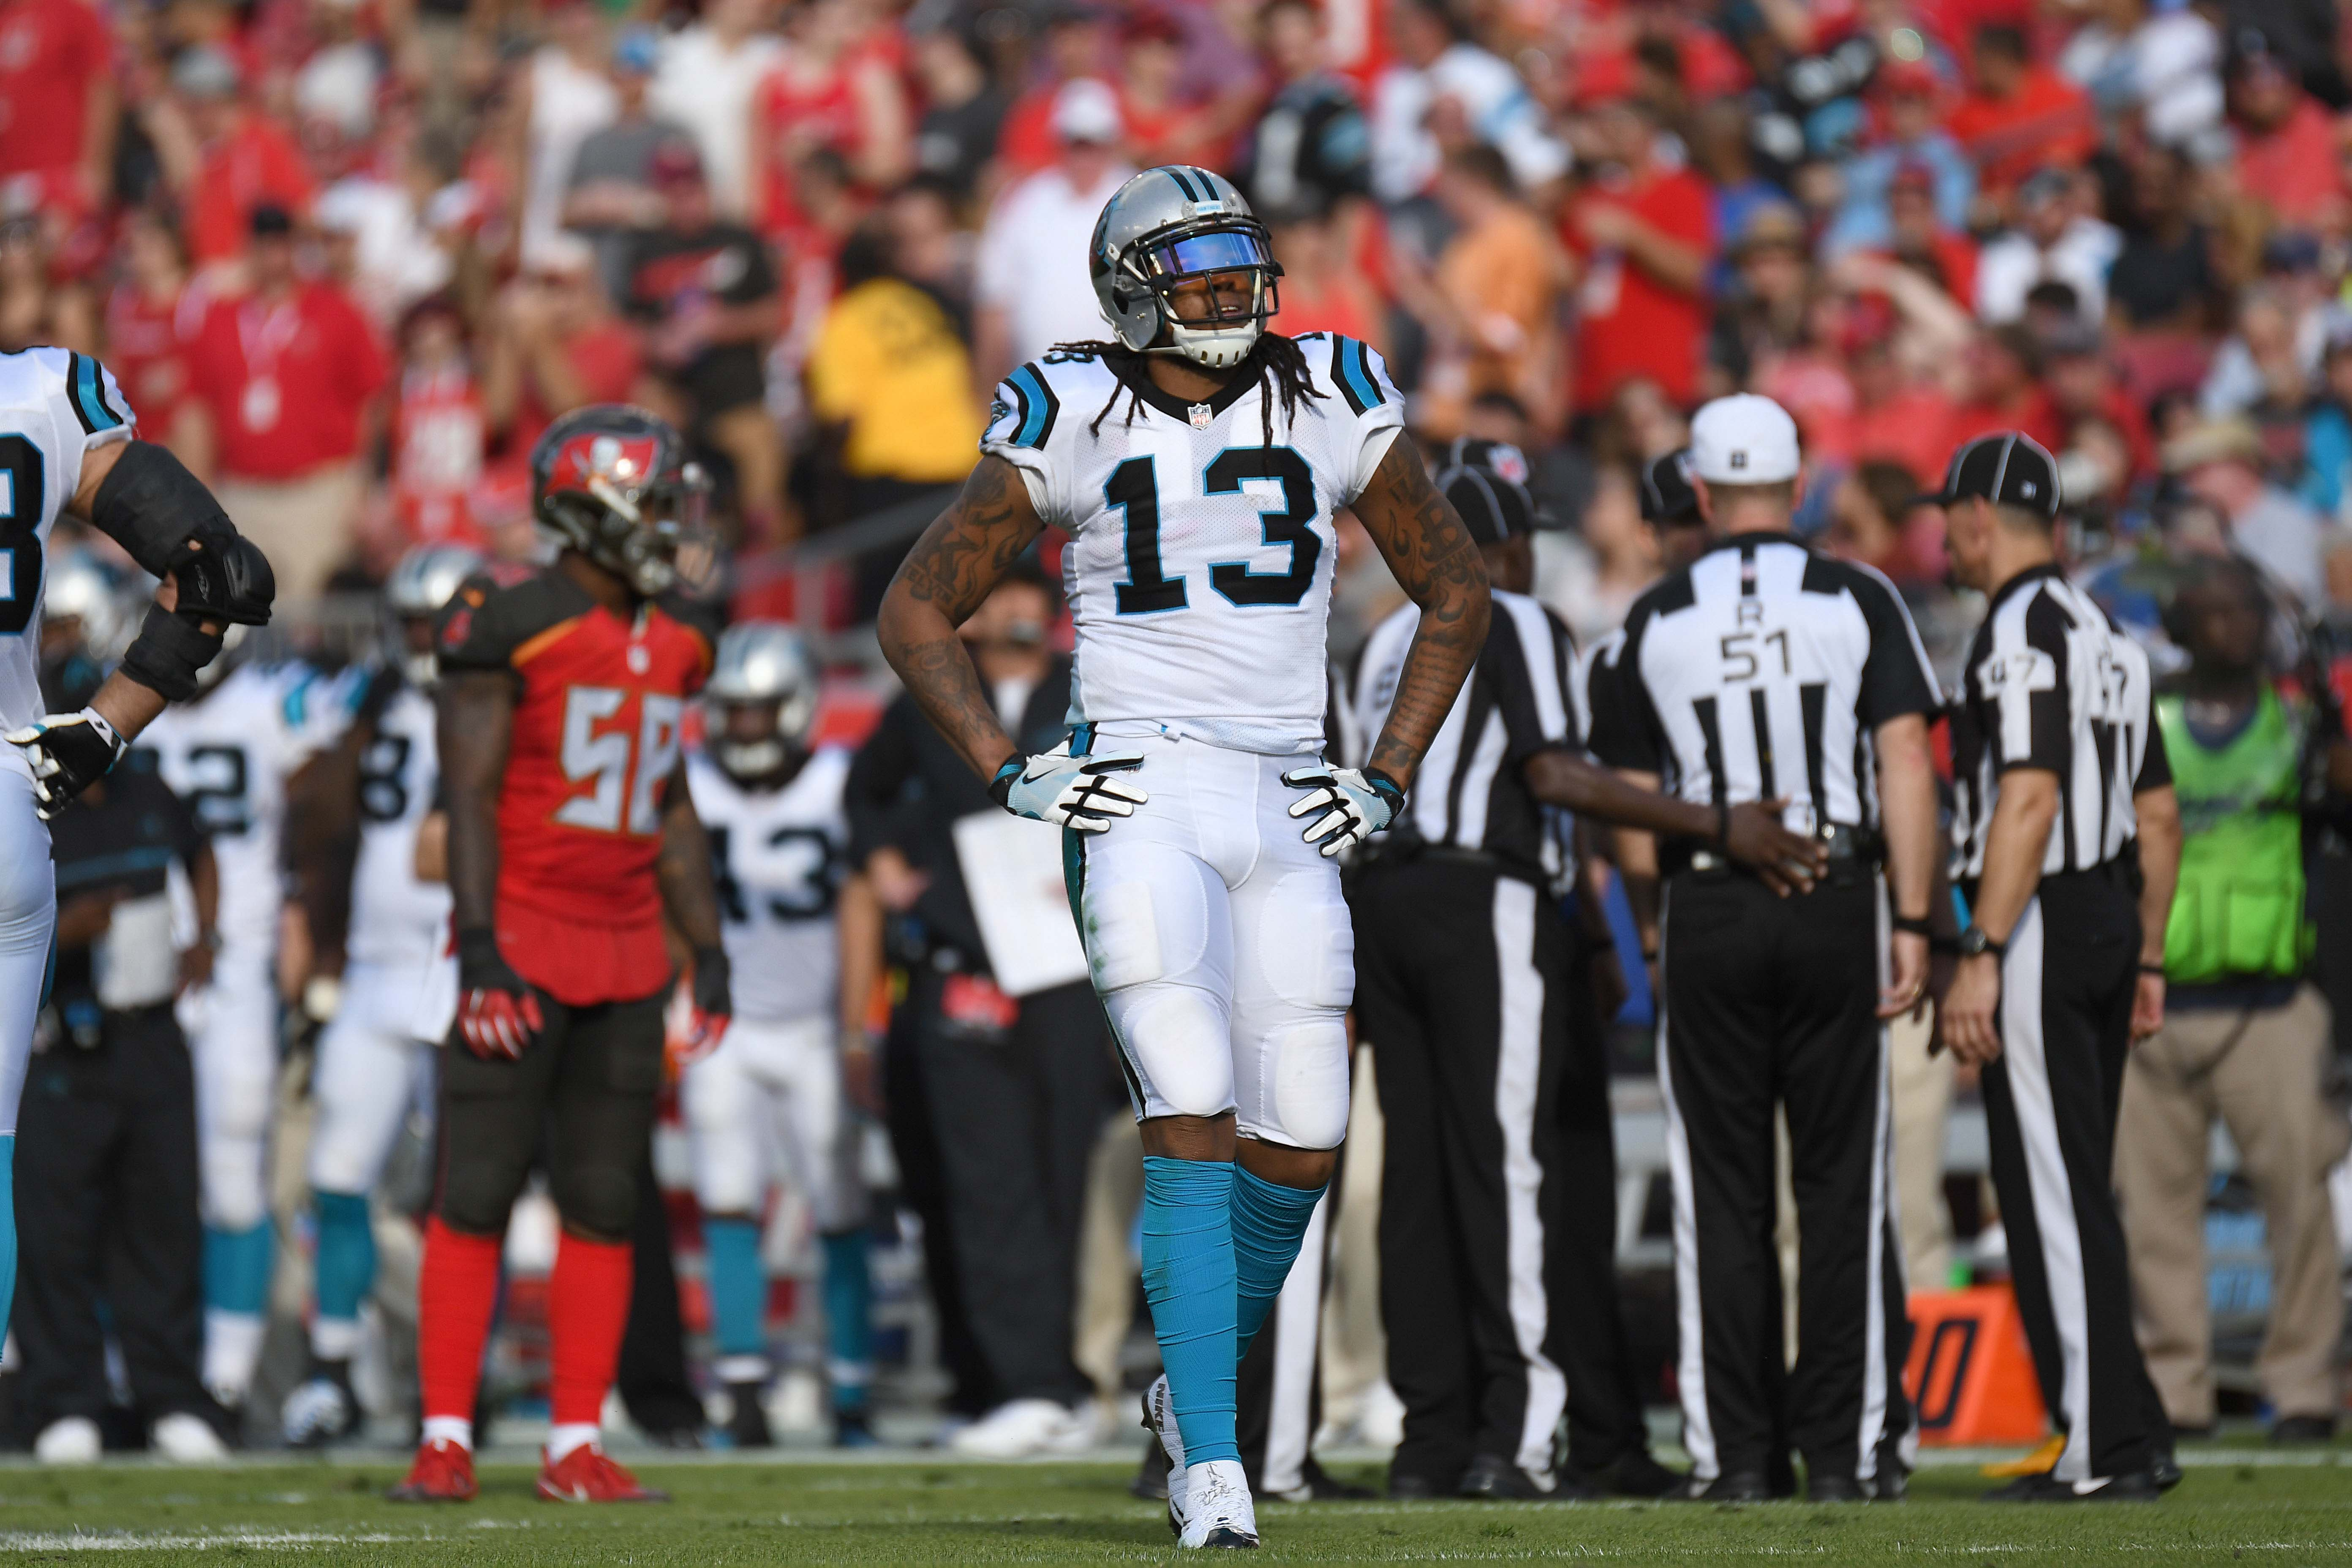 9796470-nfl-carolina-panthers-at-tampa-bay-buccaneers